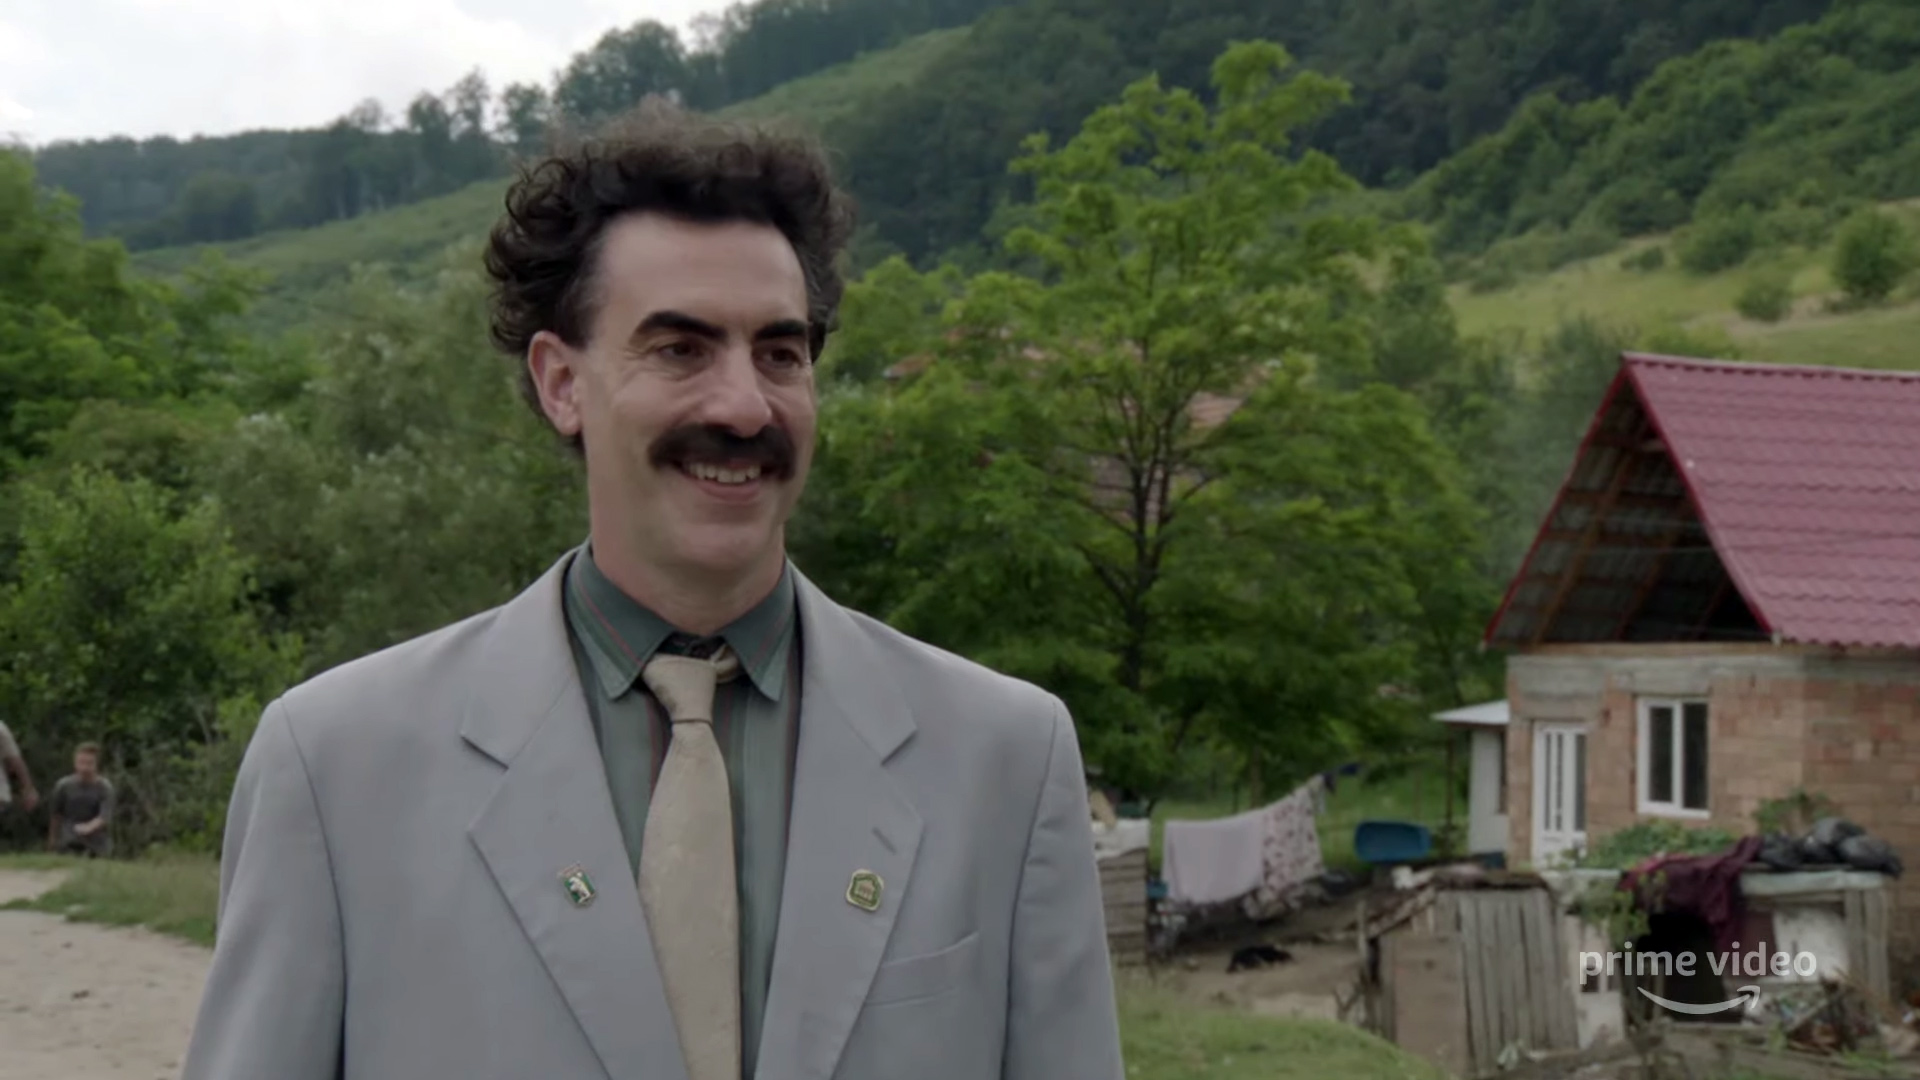 This deleted 'Borat 2' scene has everyone asking questions